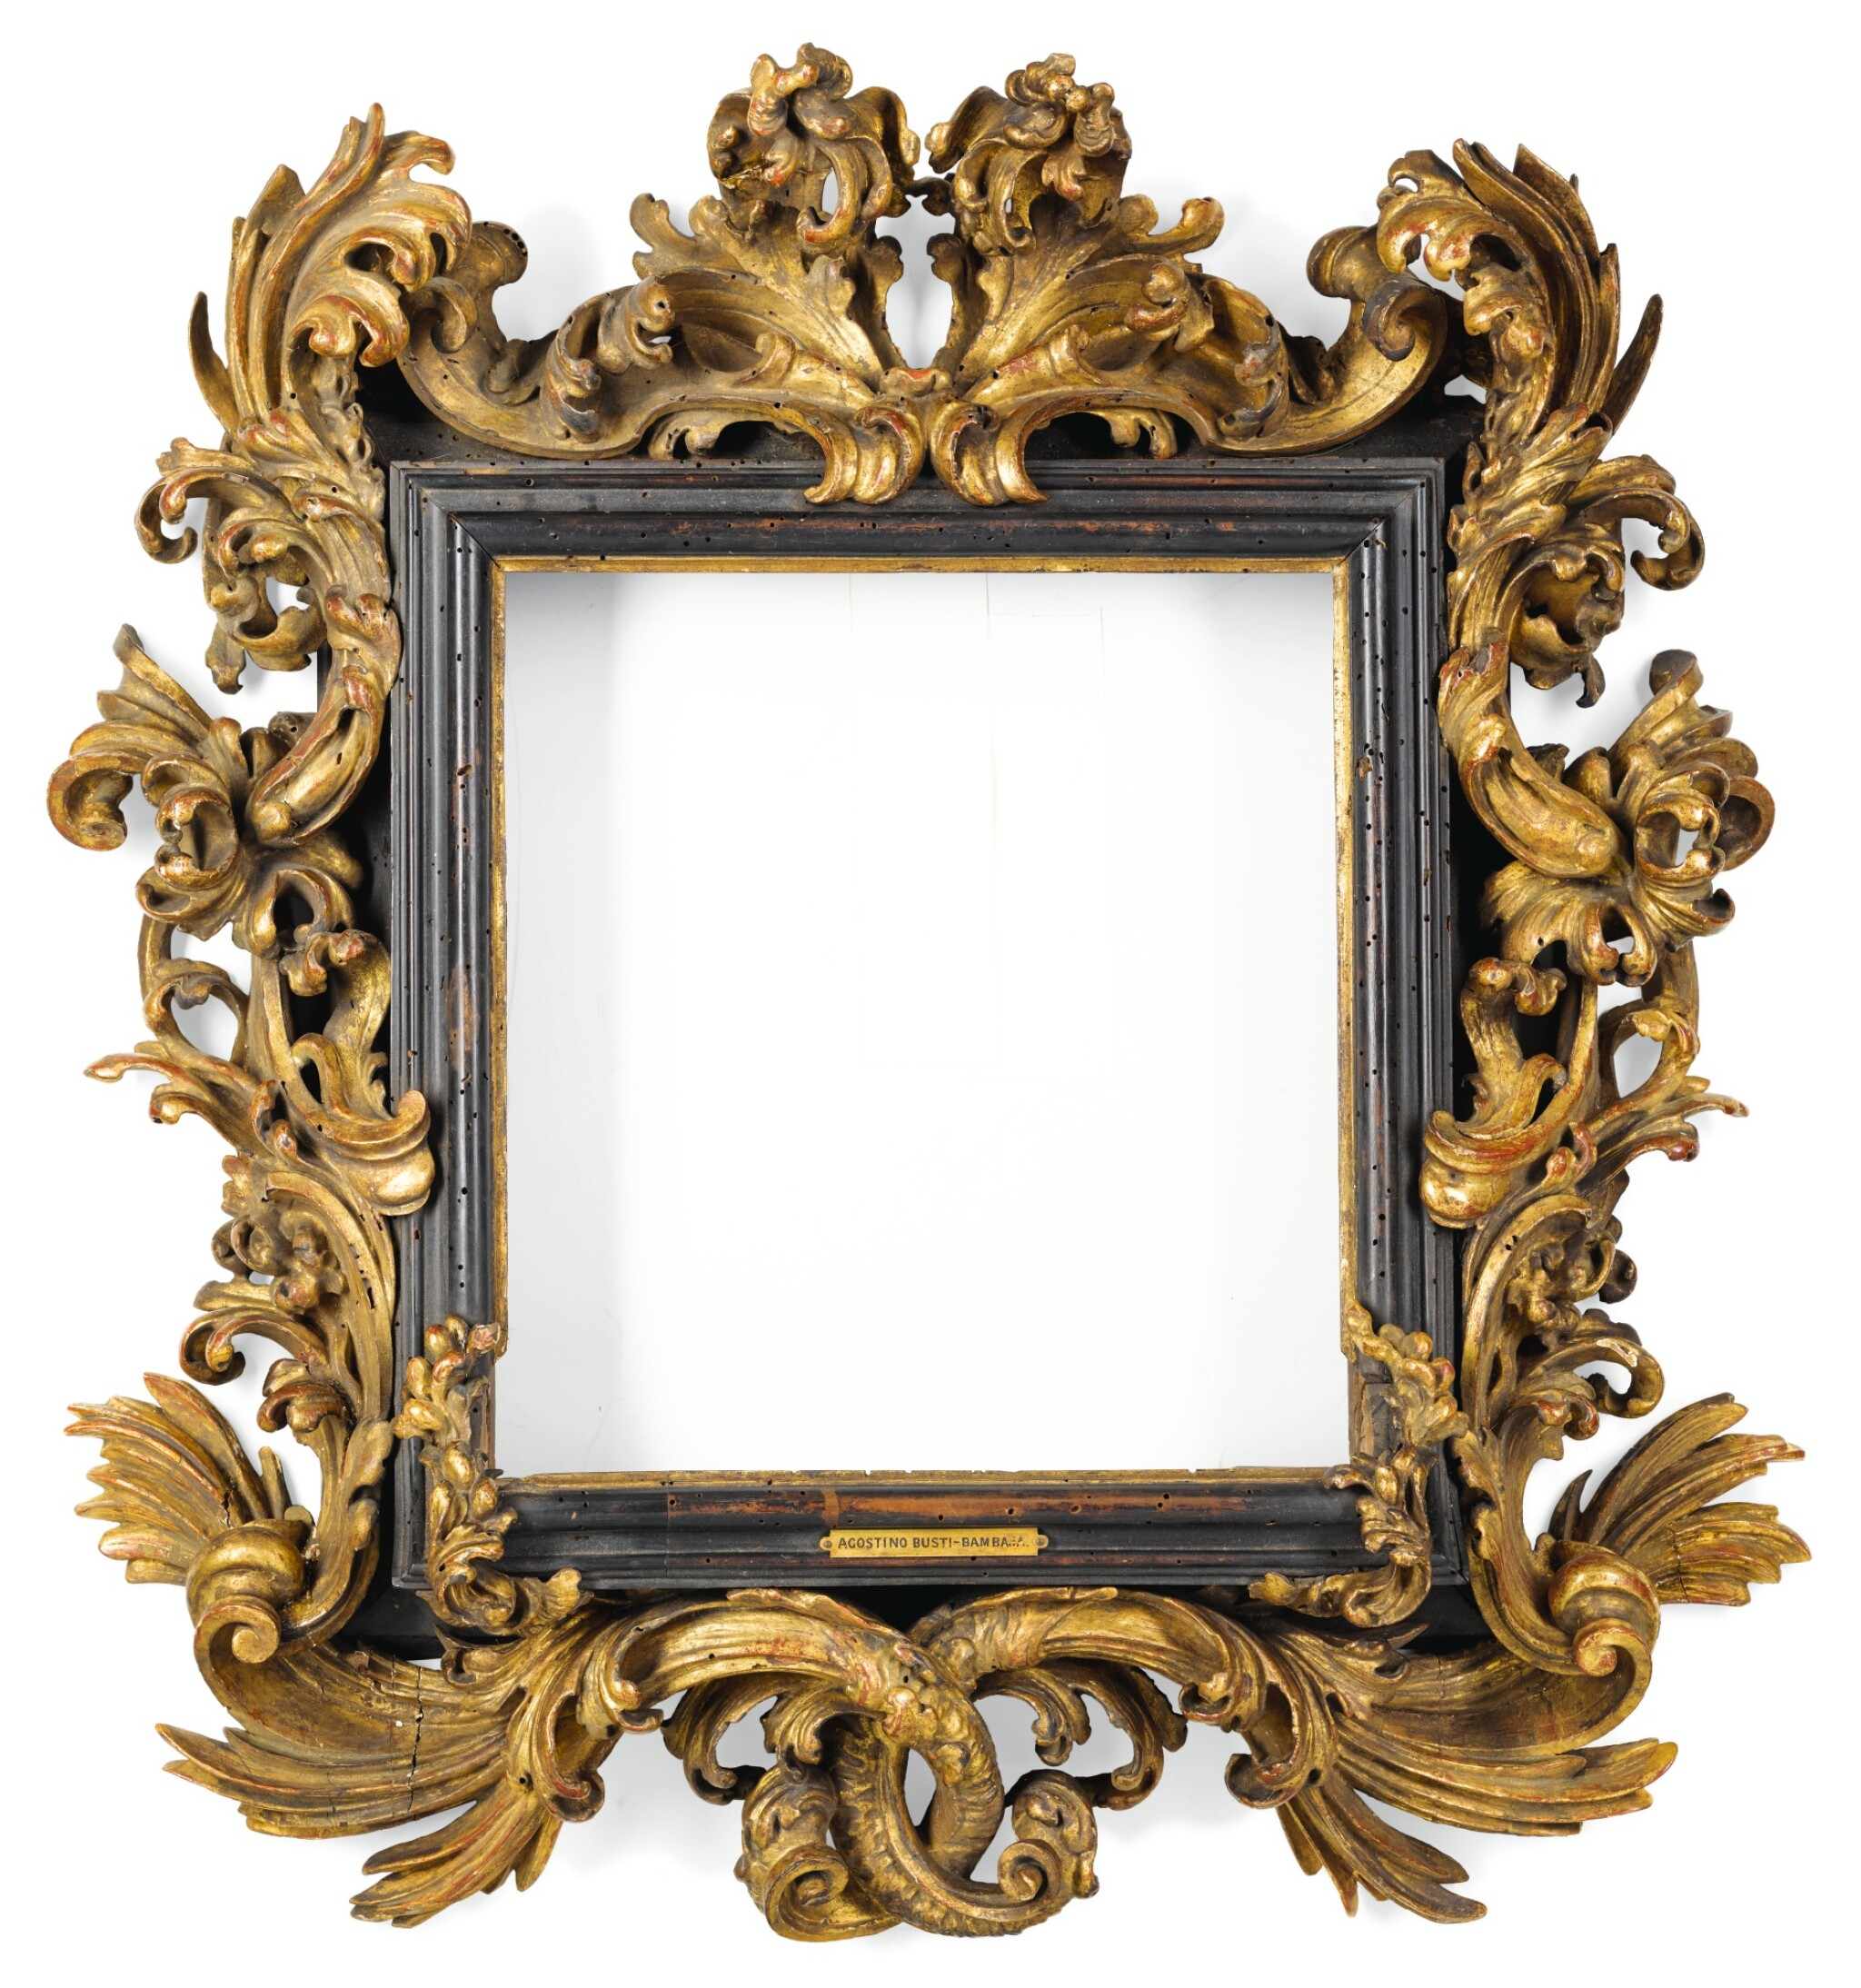 View full screen - View 1 of Lot 123. A NORTH ITALIAN BAROQUE CARVED GILTWOOD PICTURE FRAME, IN THE MANNER OF THE FANTONI WORKSHOP EARLY 18TH CENTURY.